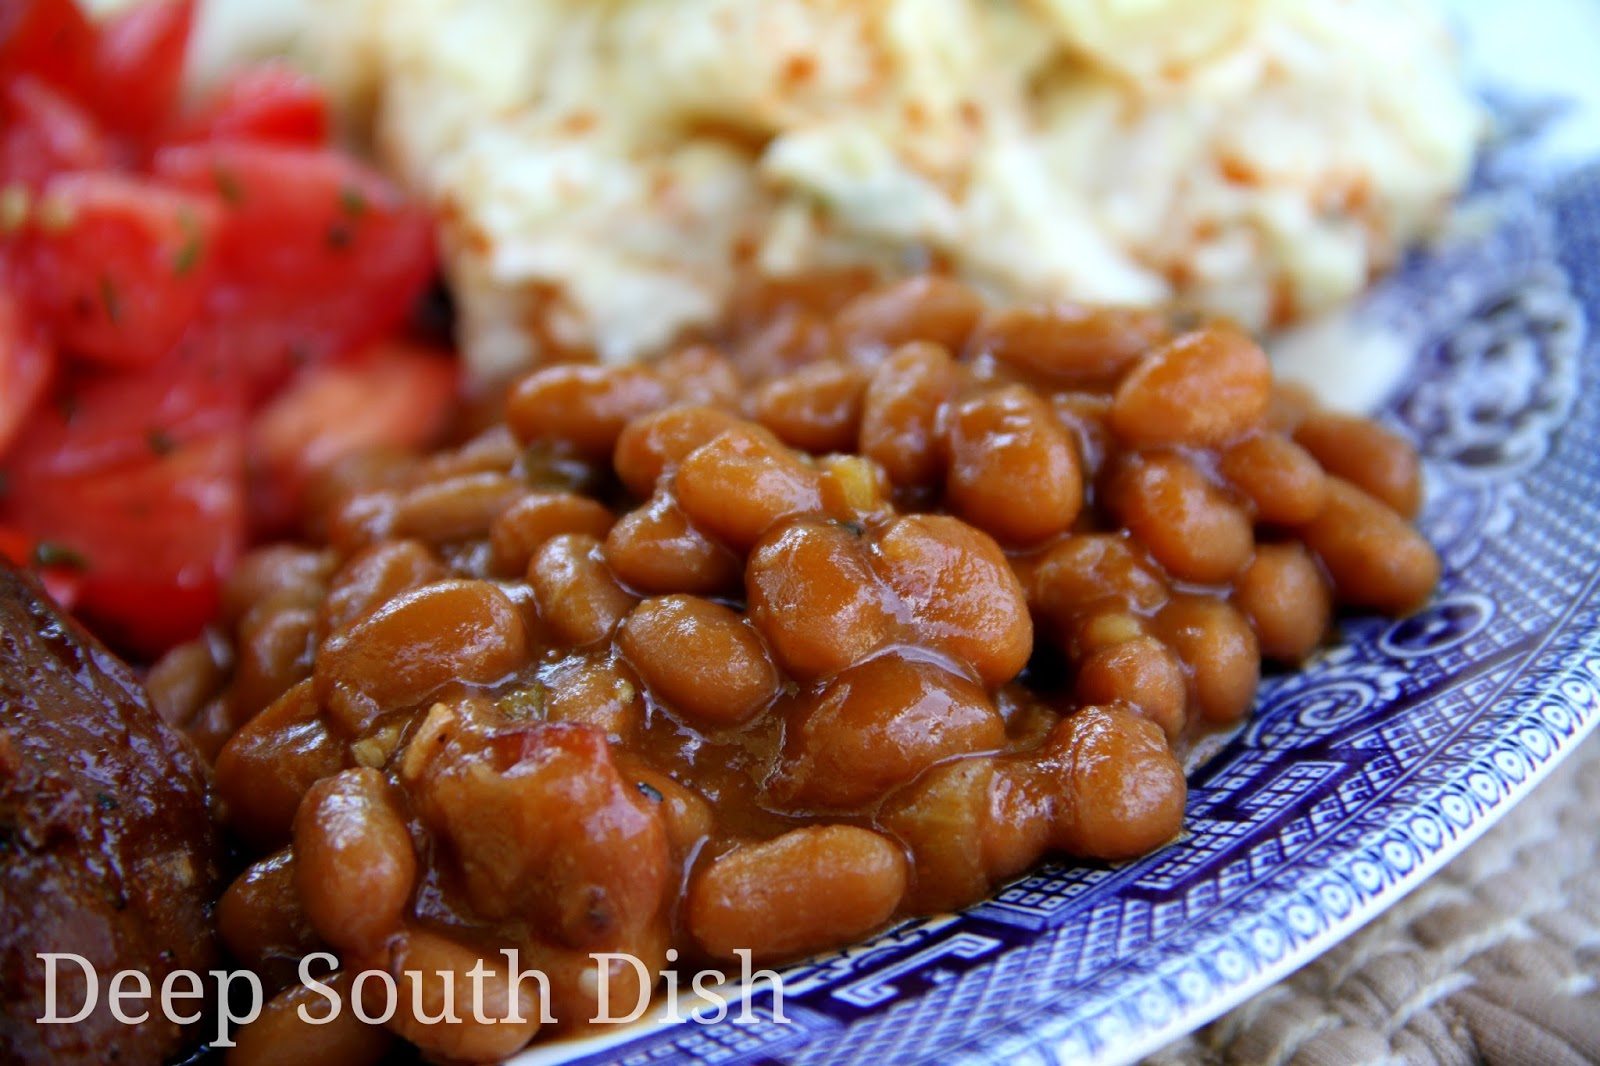 Southern seasoned baked beans with chili sauce, mustard, brown sugar, bacon, onion and bell pepper - they're a cookout tradition! Pictured here with grilled ribs, Mama's Southern potato salad and marinated tomatoes.